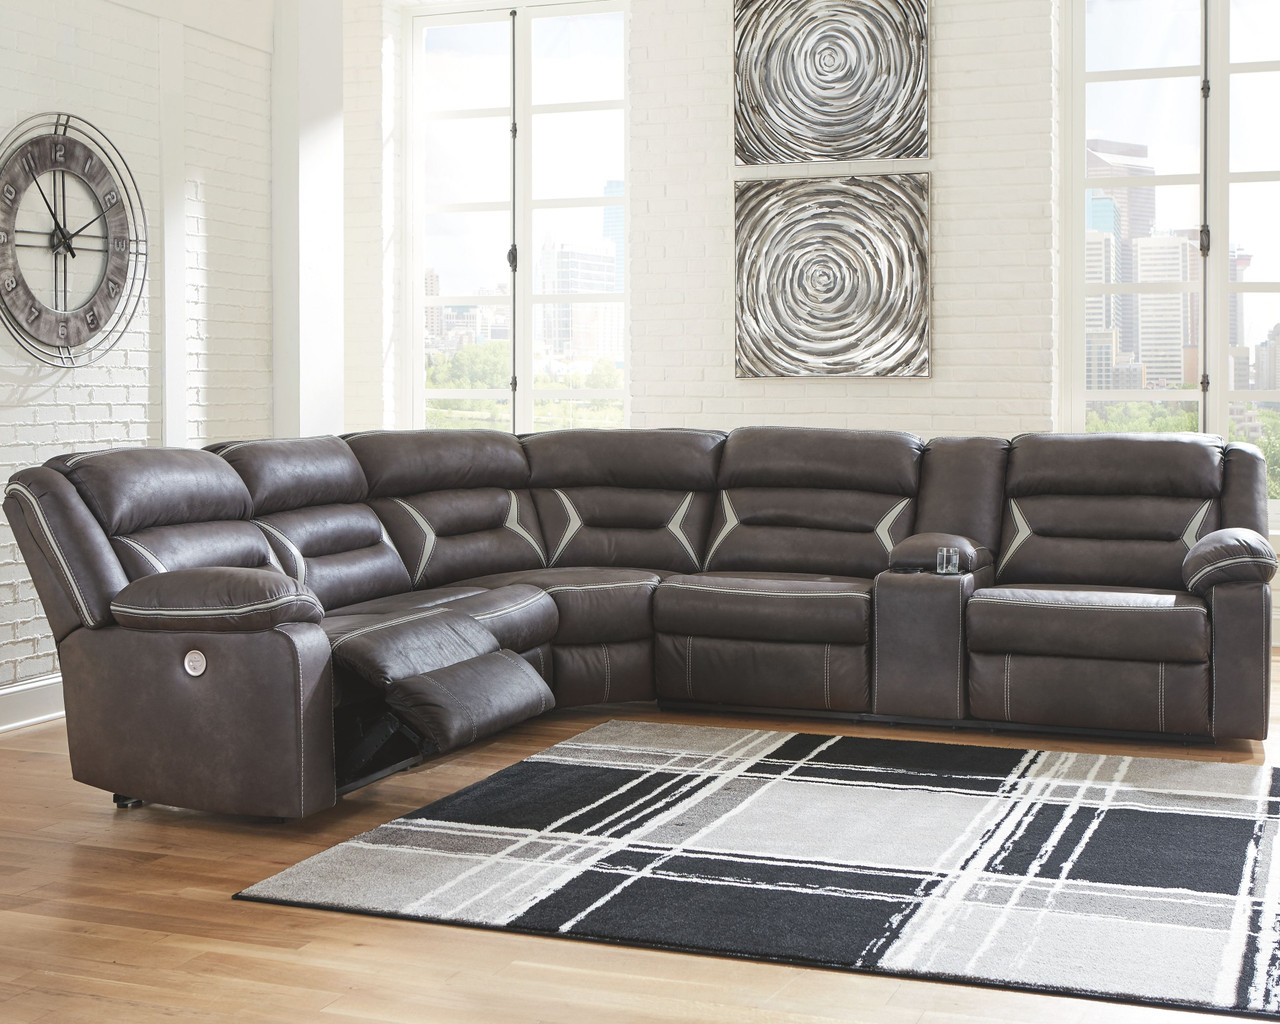 Ashley Kincord Midnight Laf Zero Wall Power Recliner Armless Chair Wedge Raf Reclining Power Sofa Couch With Console Sectional